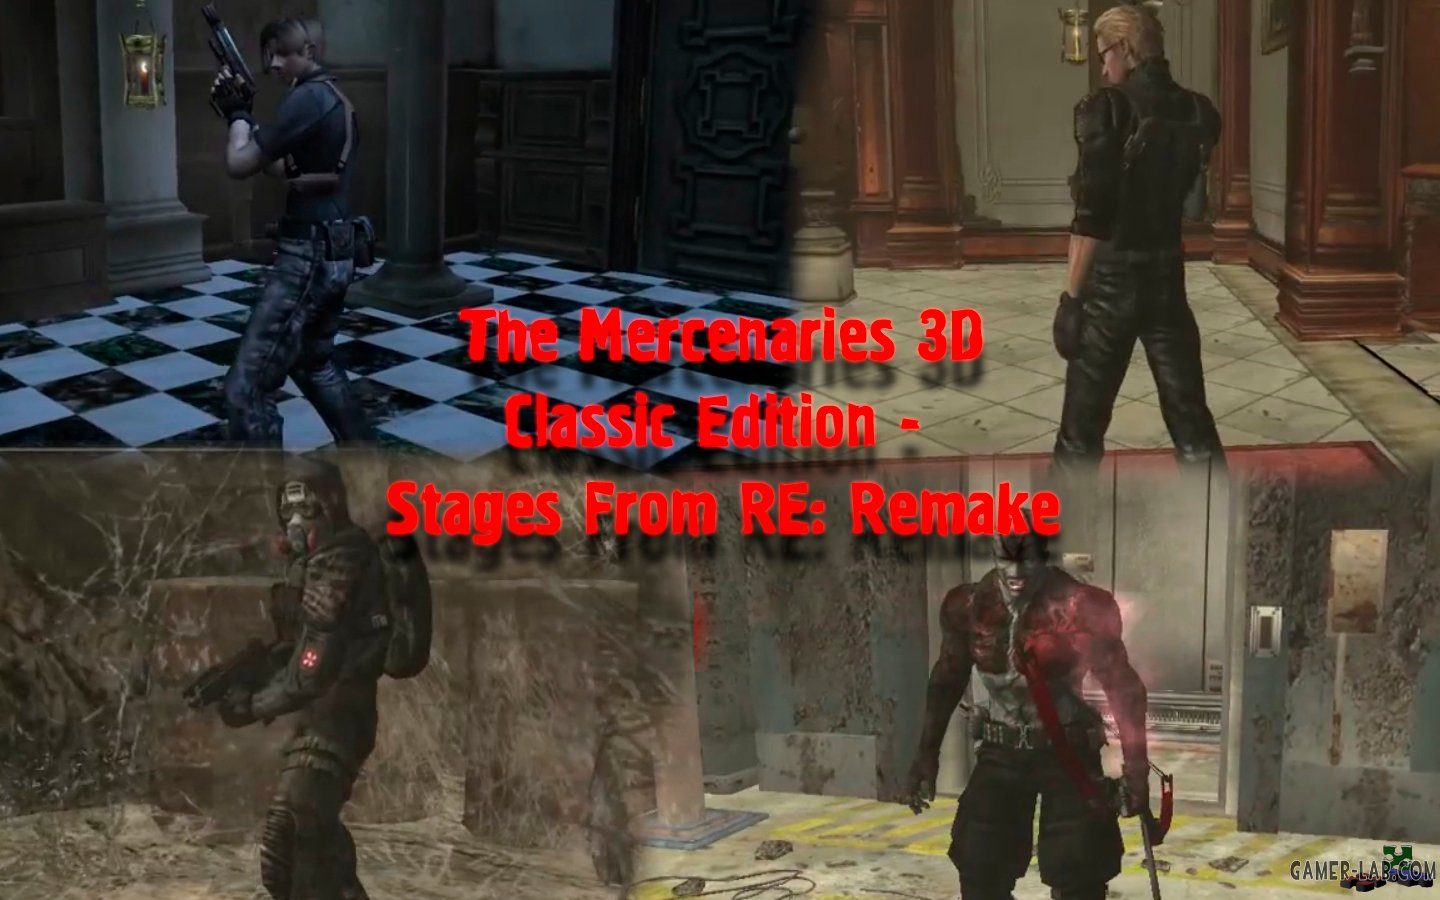 The Mercenaries 3D Classic Edition - Stages From RE: Remake